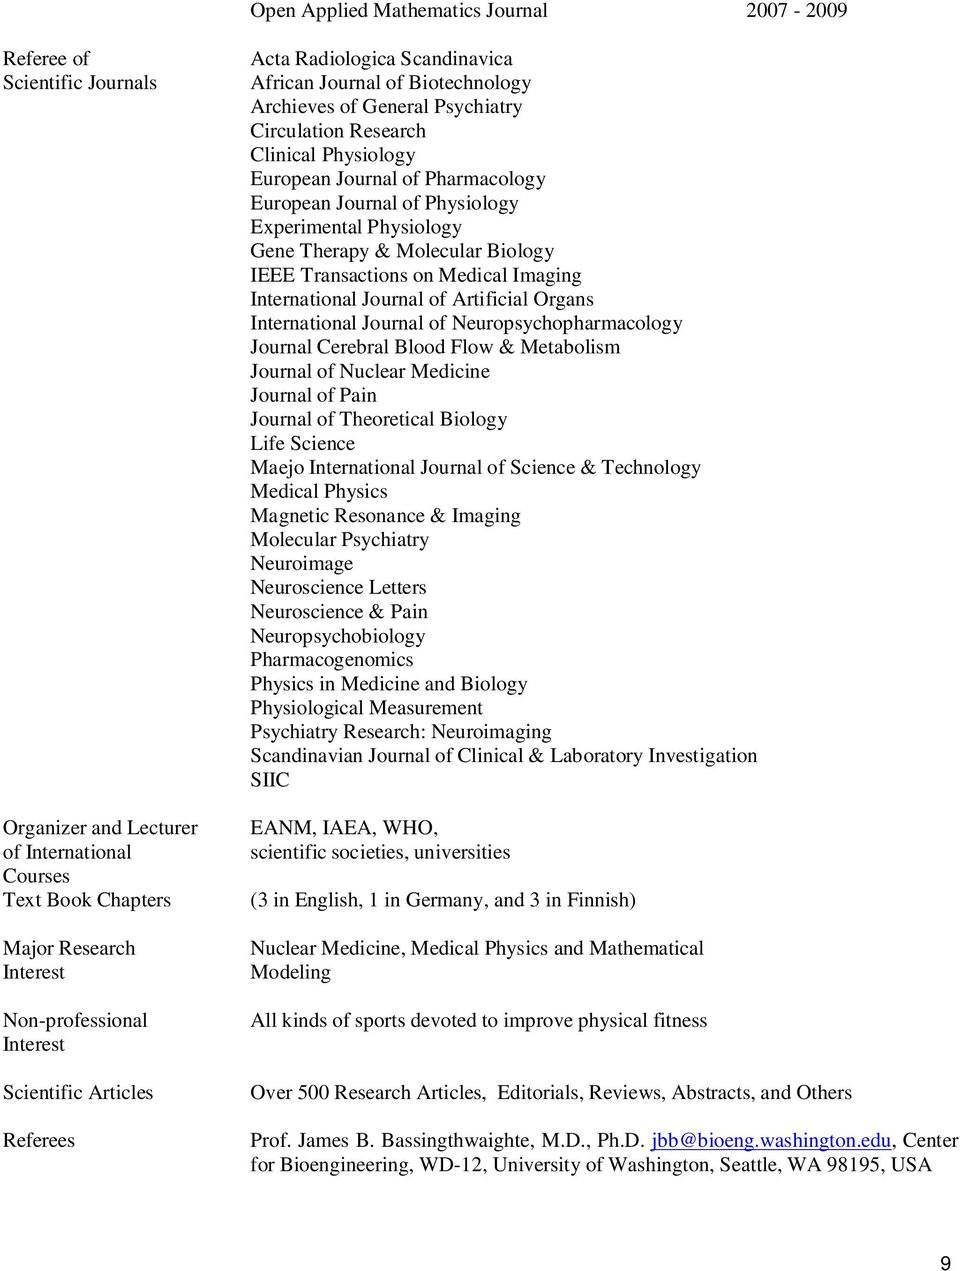 European Journal of Physiology Experimental Physiology Gene Therapy & Molecular Biology IEEE Transactions on Medical Imaging International Journal of Artificial Organs International Journal of